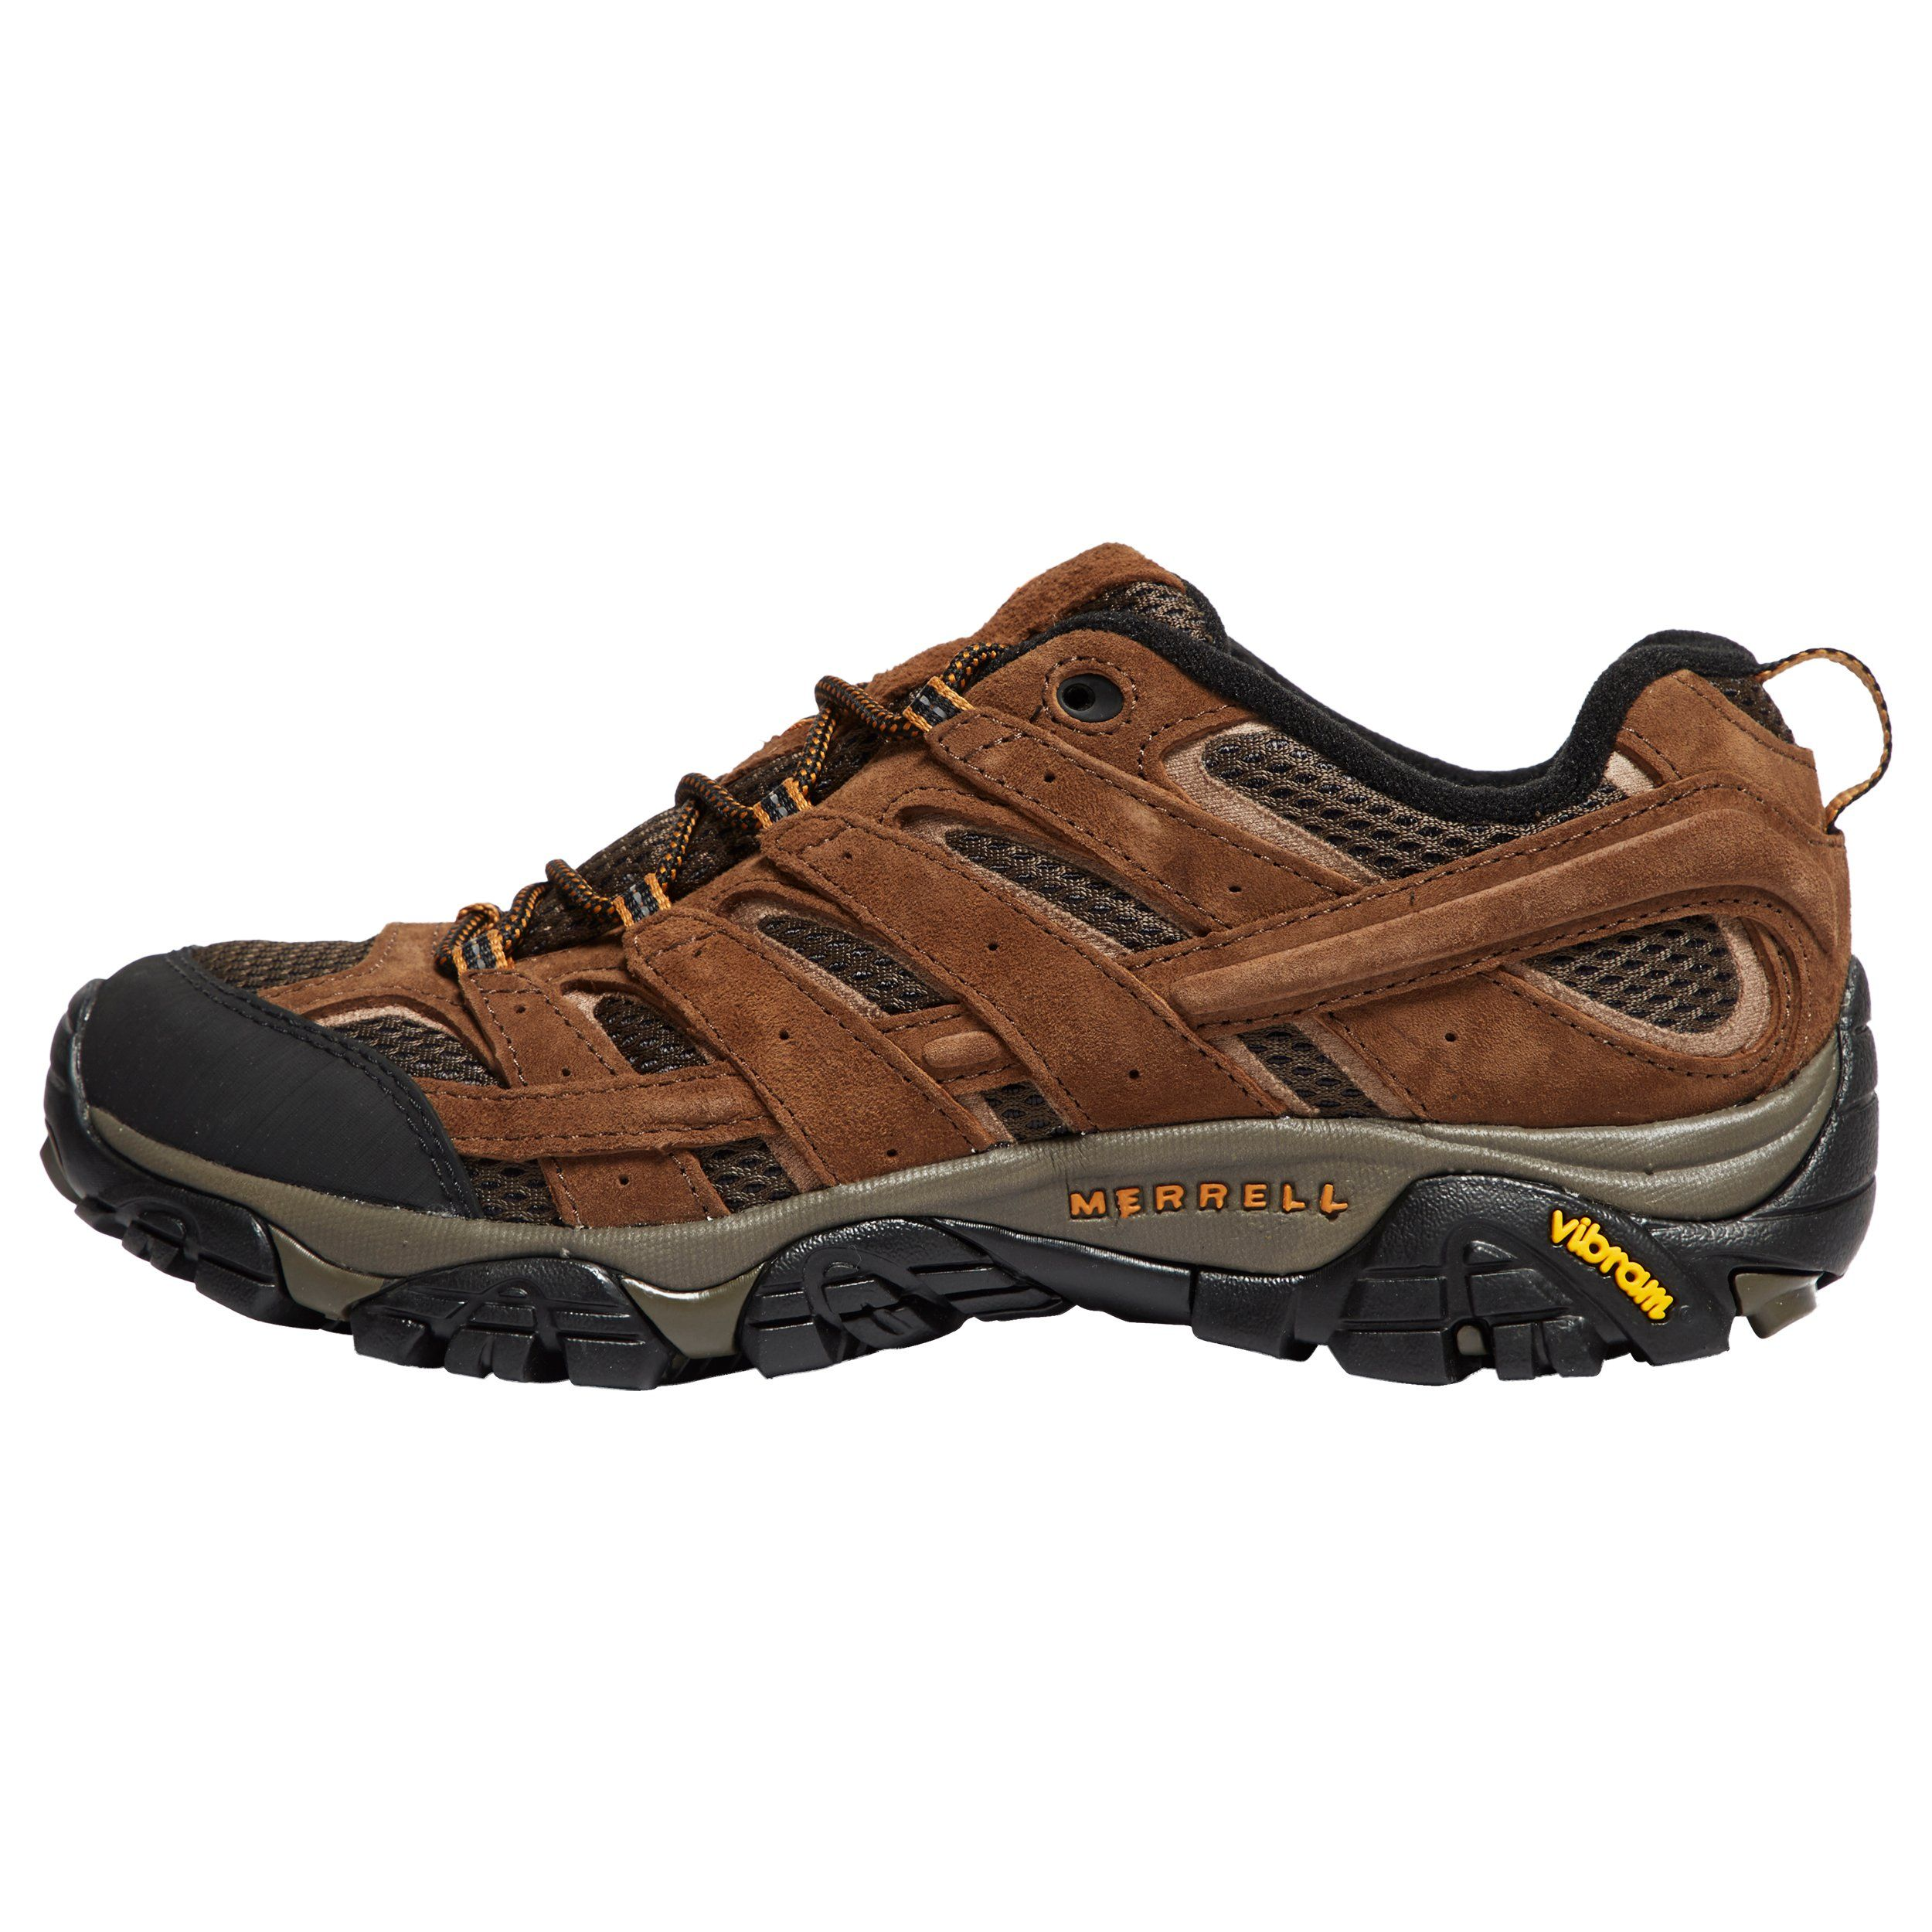 Merrell Men's Mother-Of-All-Boots 2 Ventilator Hiking Shoes